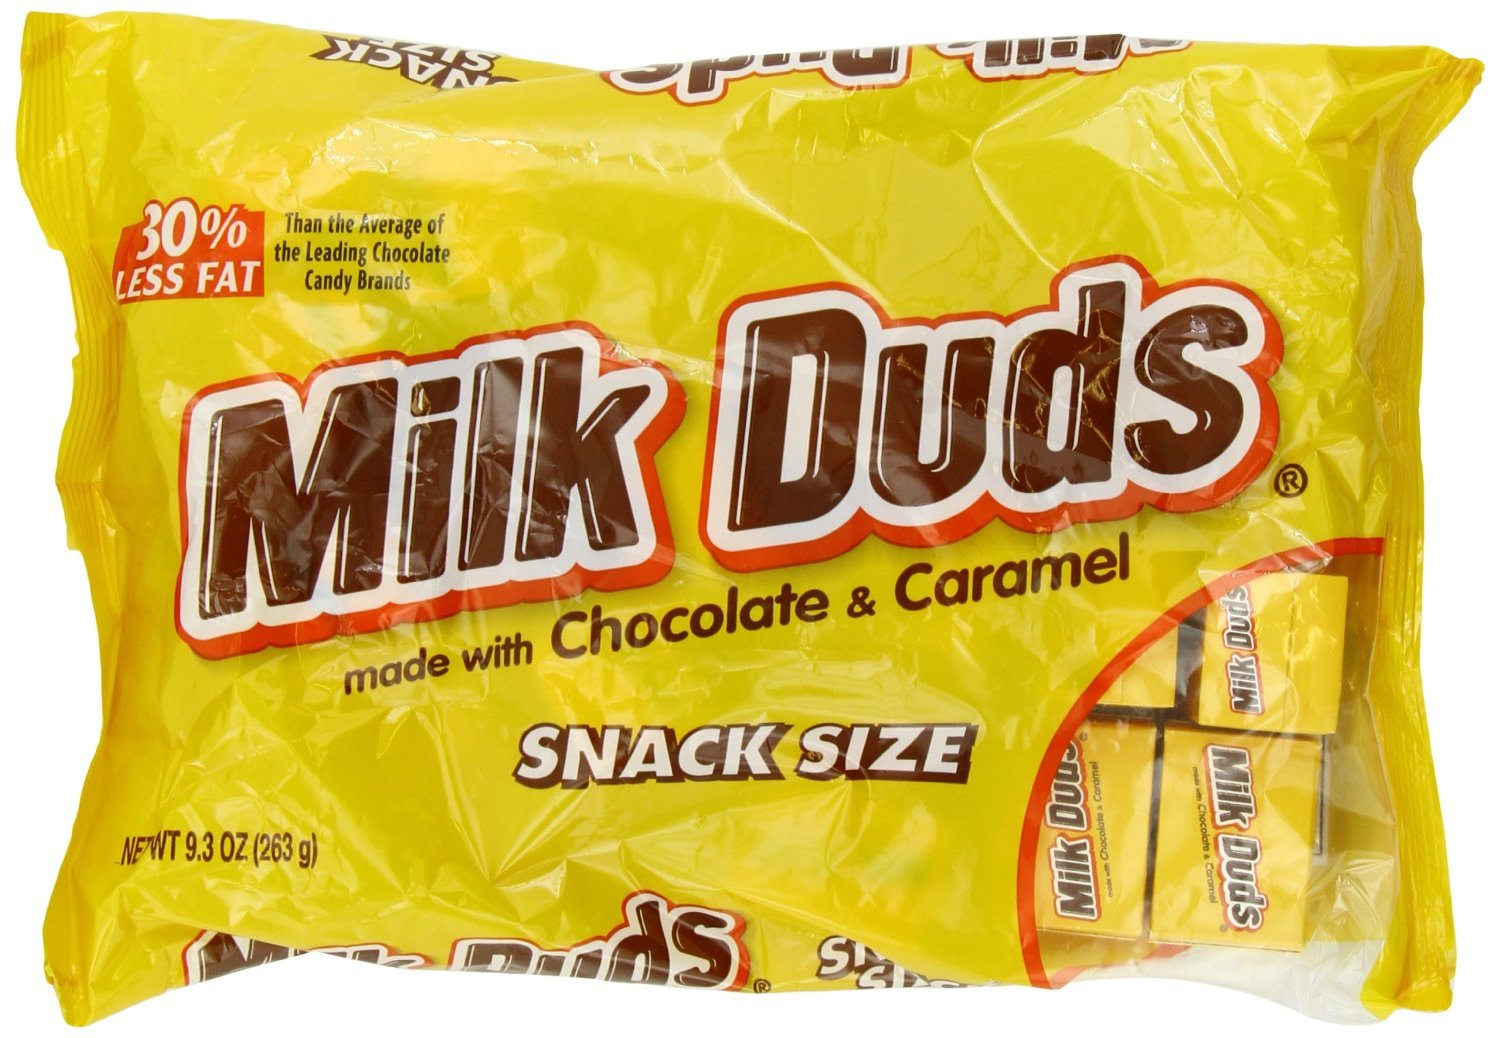 Milk Duds Snack Size Boxes, Milk Chocolate Covered Caramels, 9.3-ounce Bags (Pack of 4) by Milk Duds